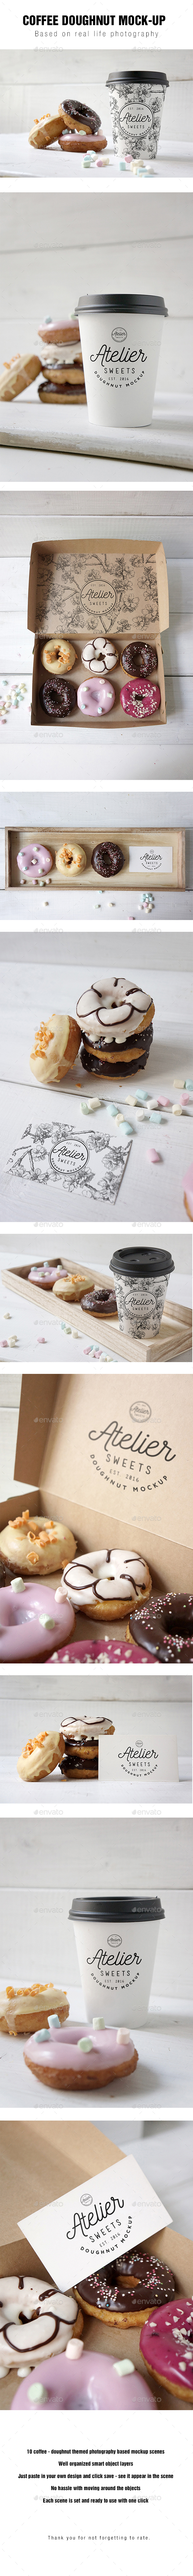 Coffee Doughnut Mockup - Food and Drink Packaging